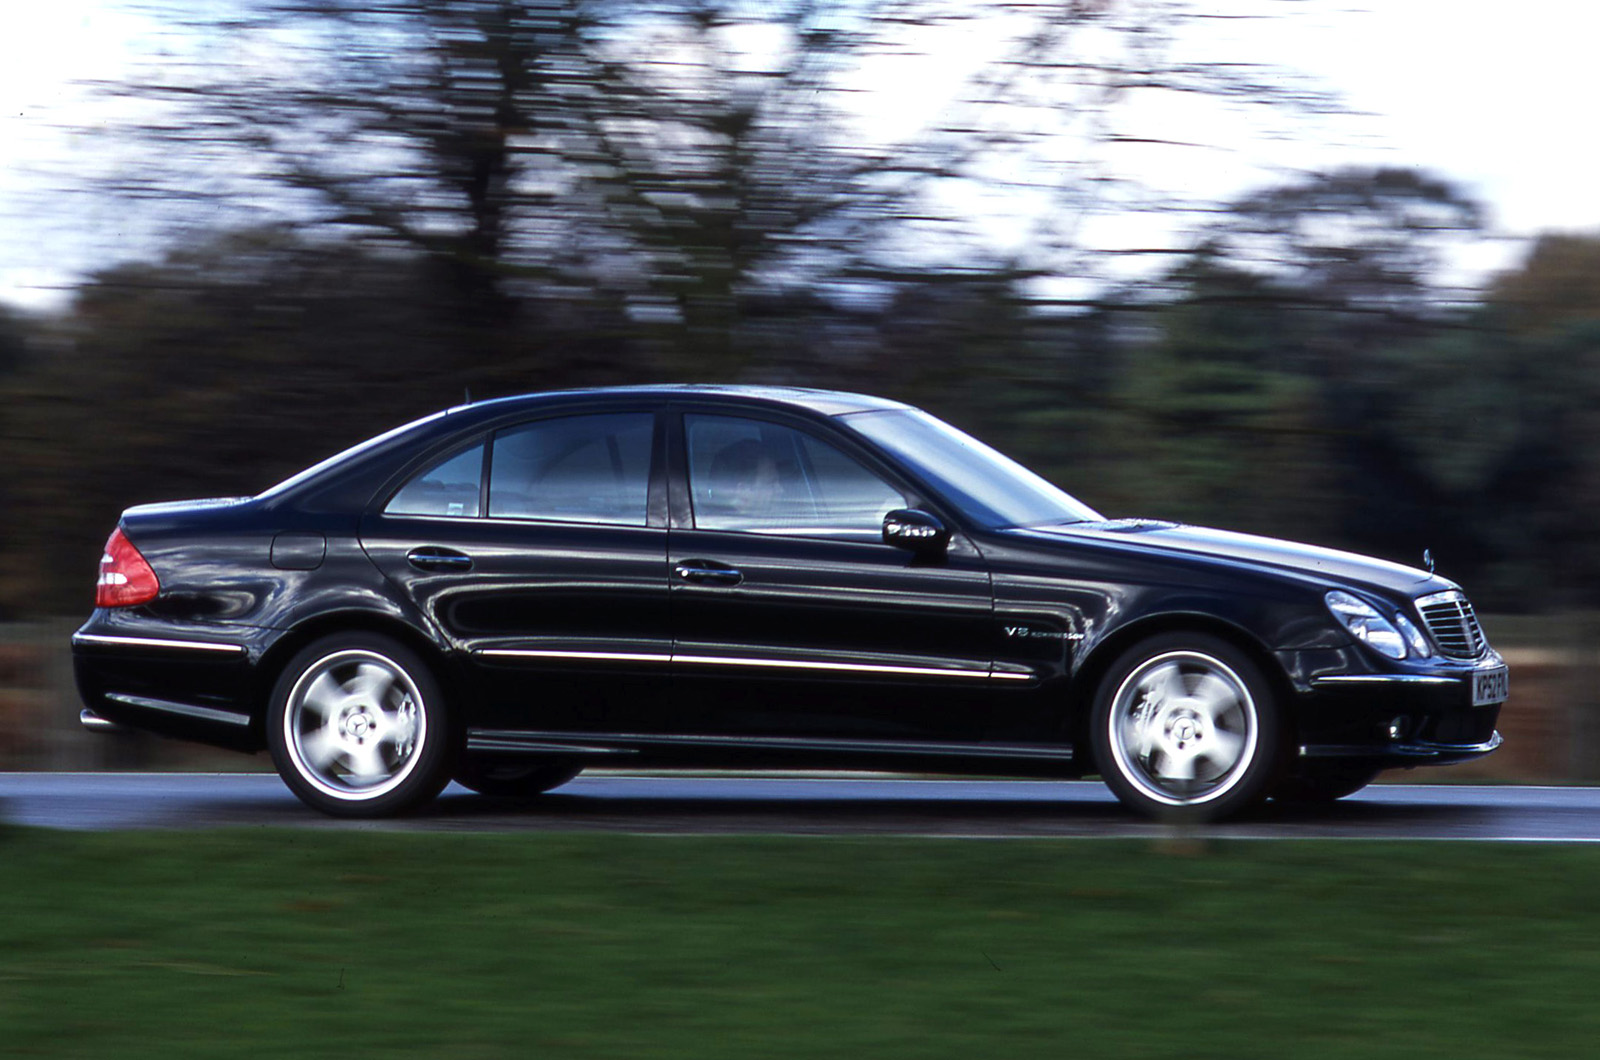 Mercedes E55 AMG buying guide | Autocar